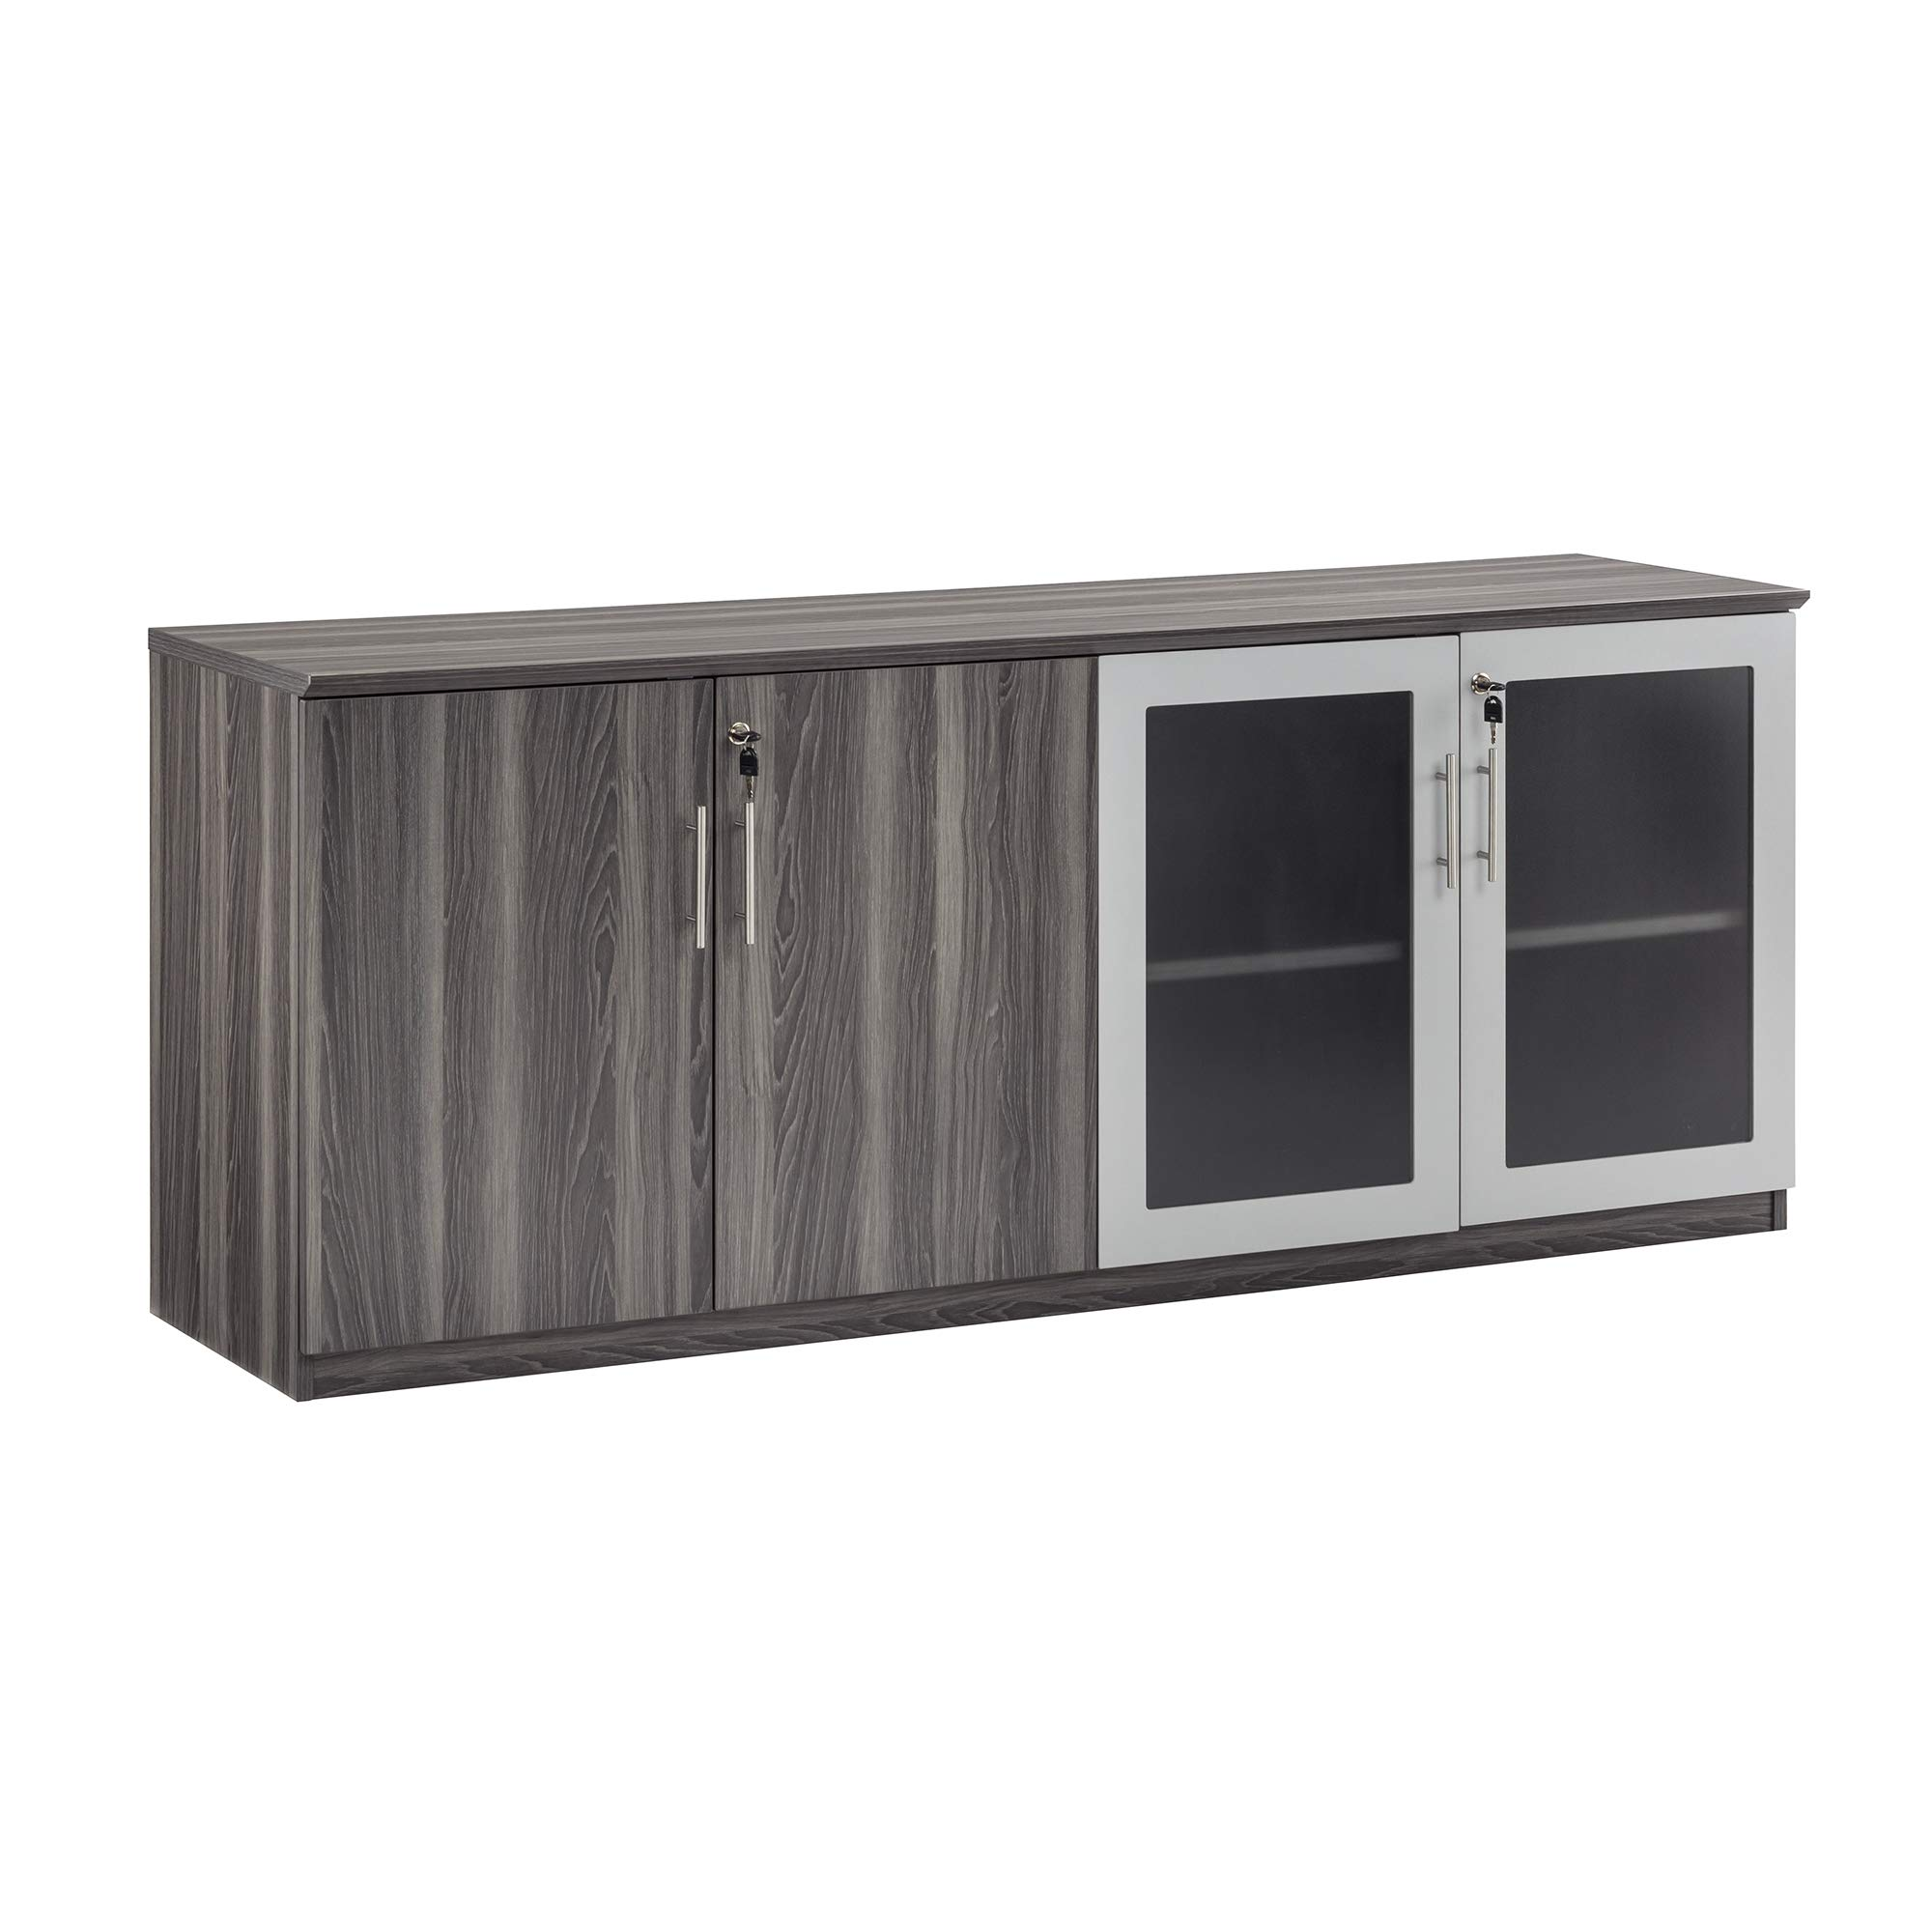 Safco Medina Cabinet, Gray Steel by Safco